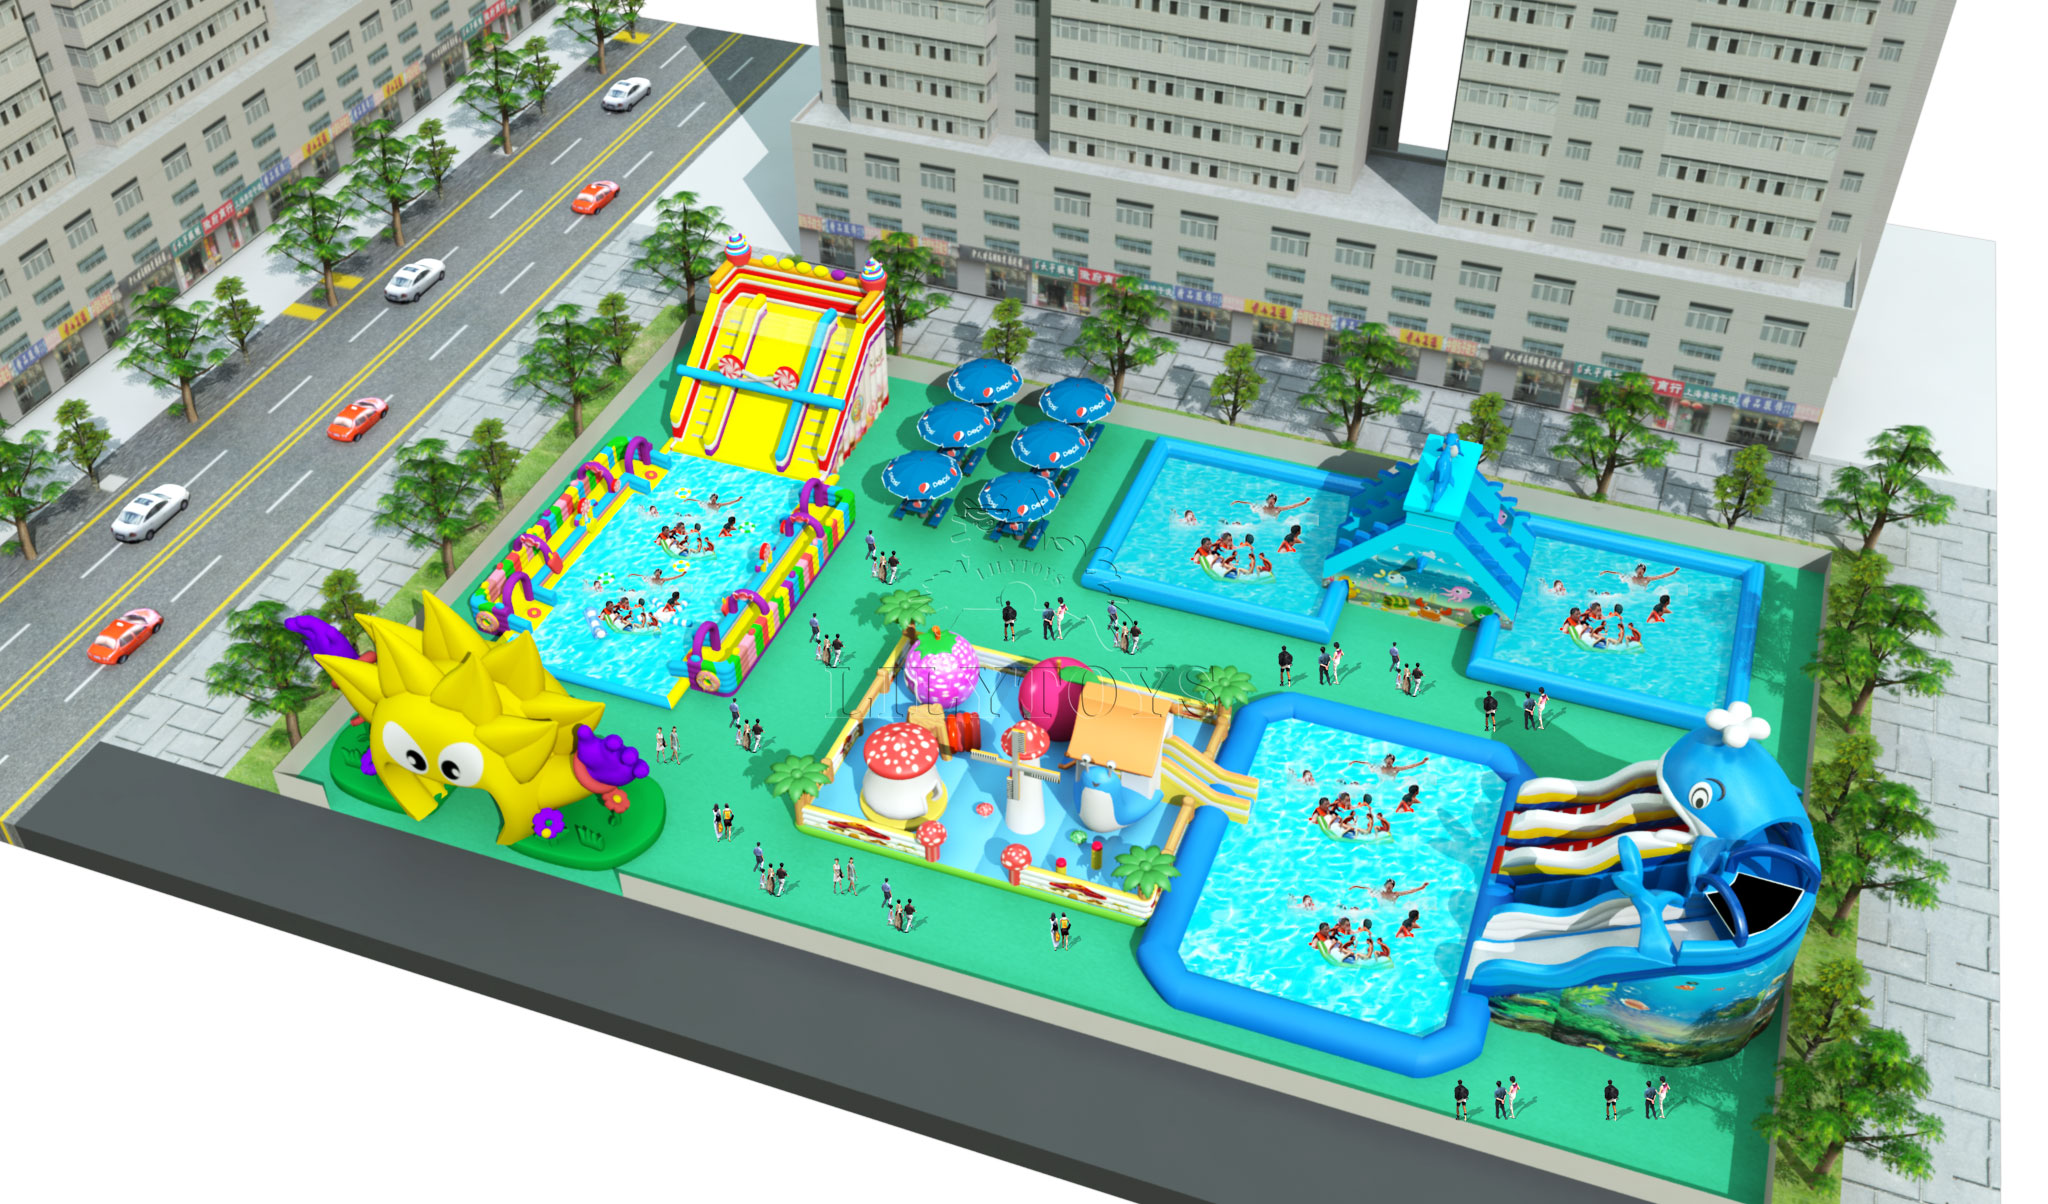 inflatable mobile water park on the ground